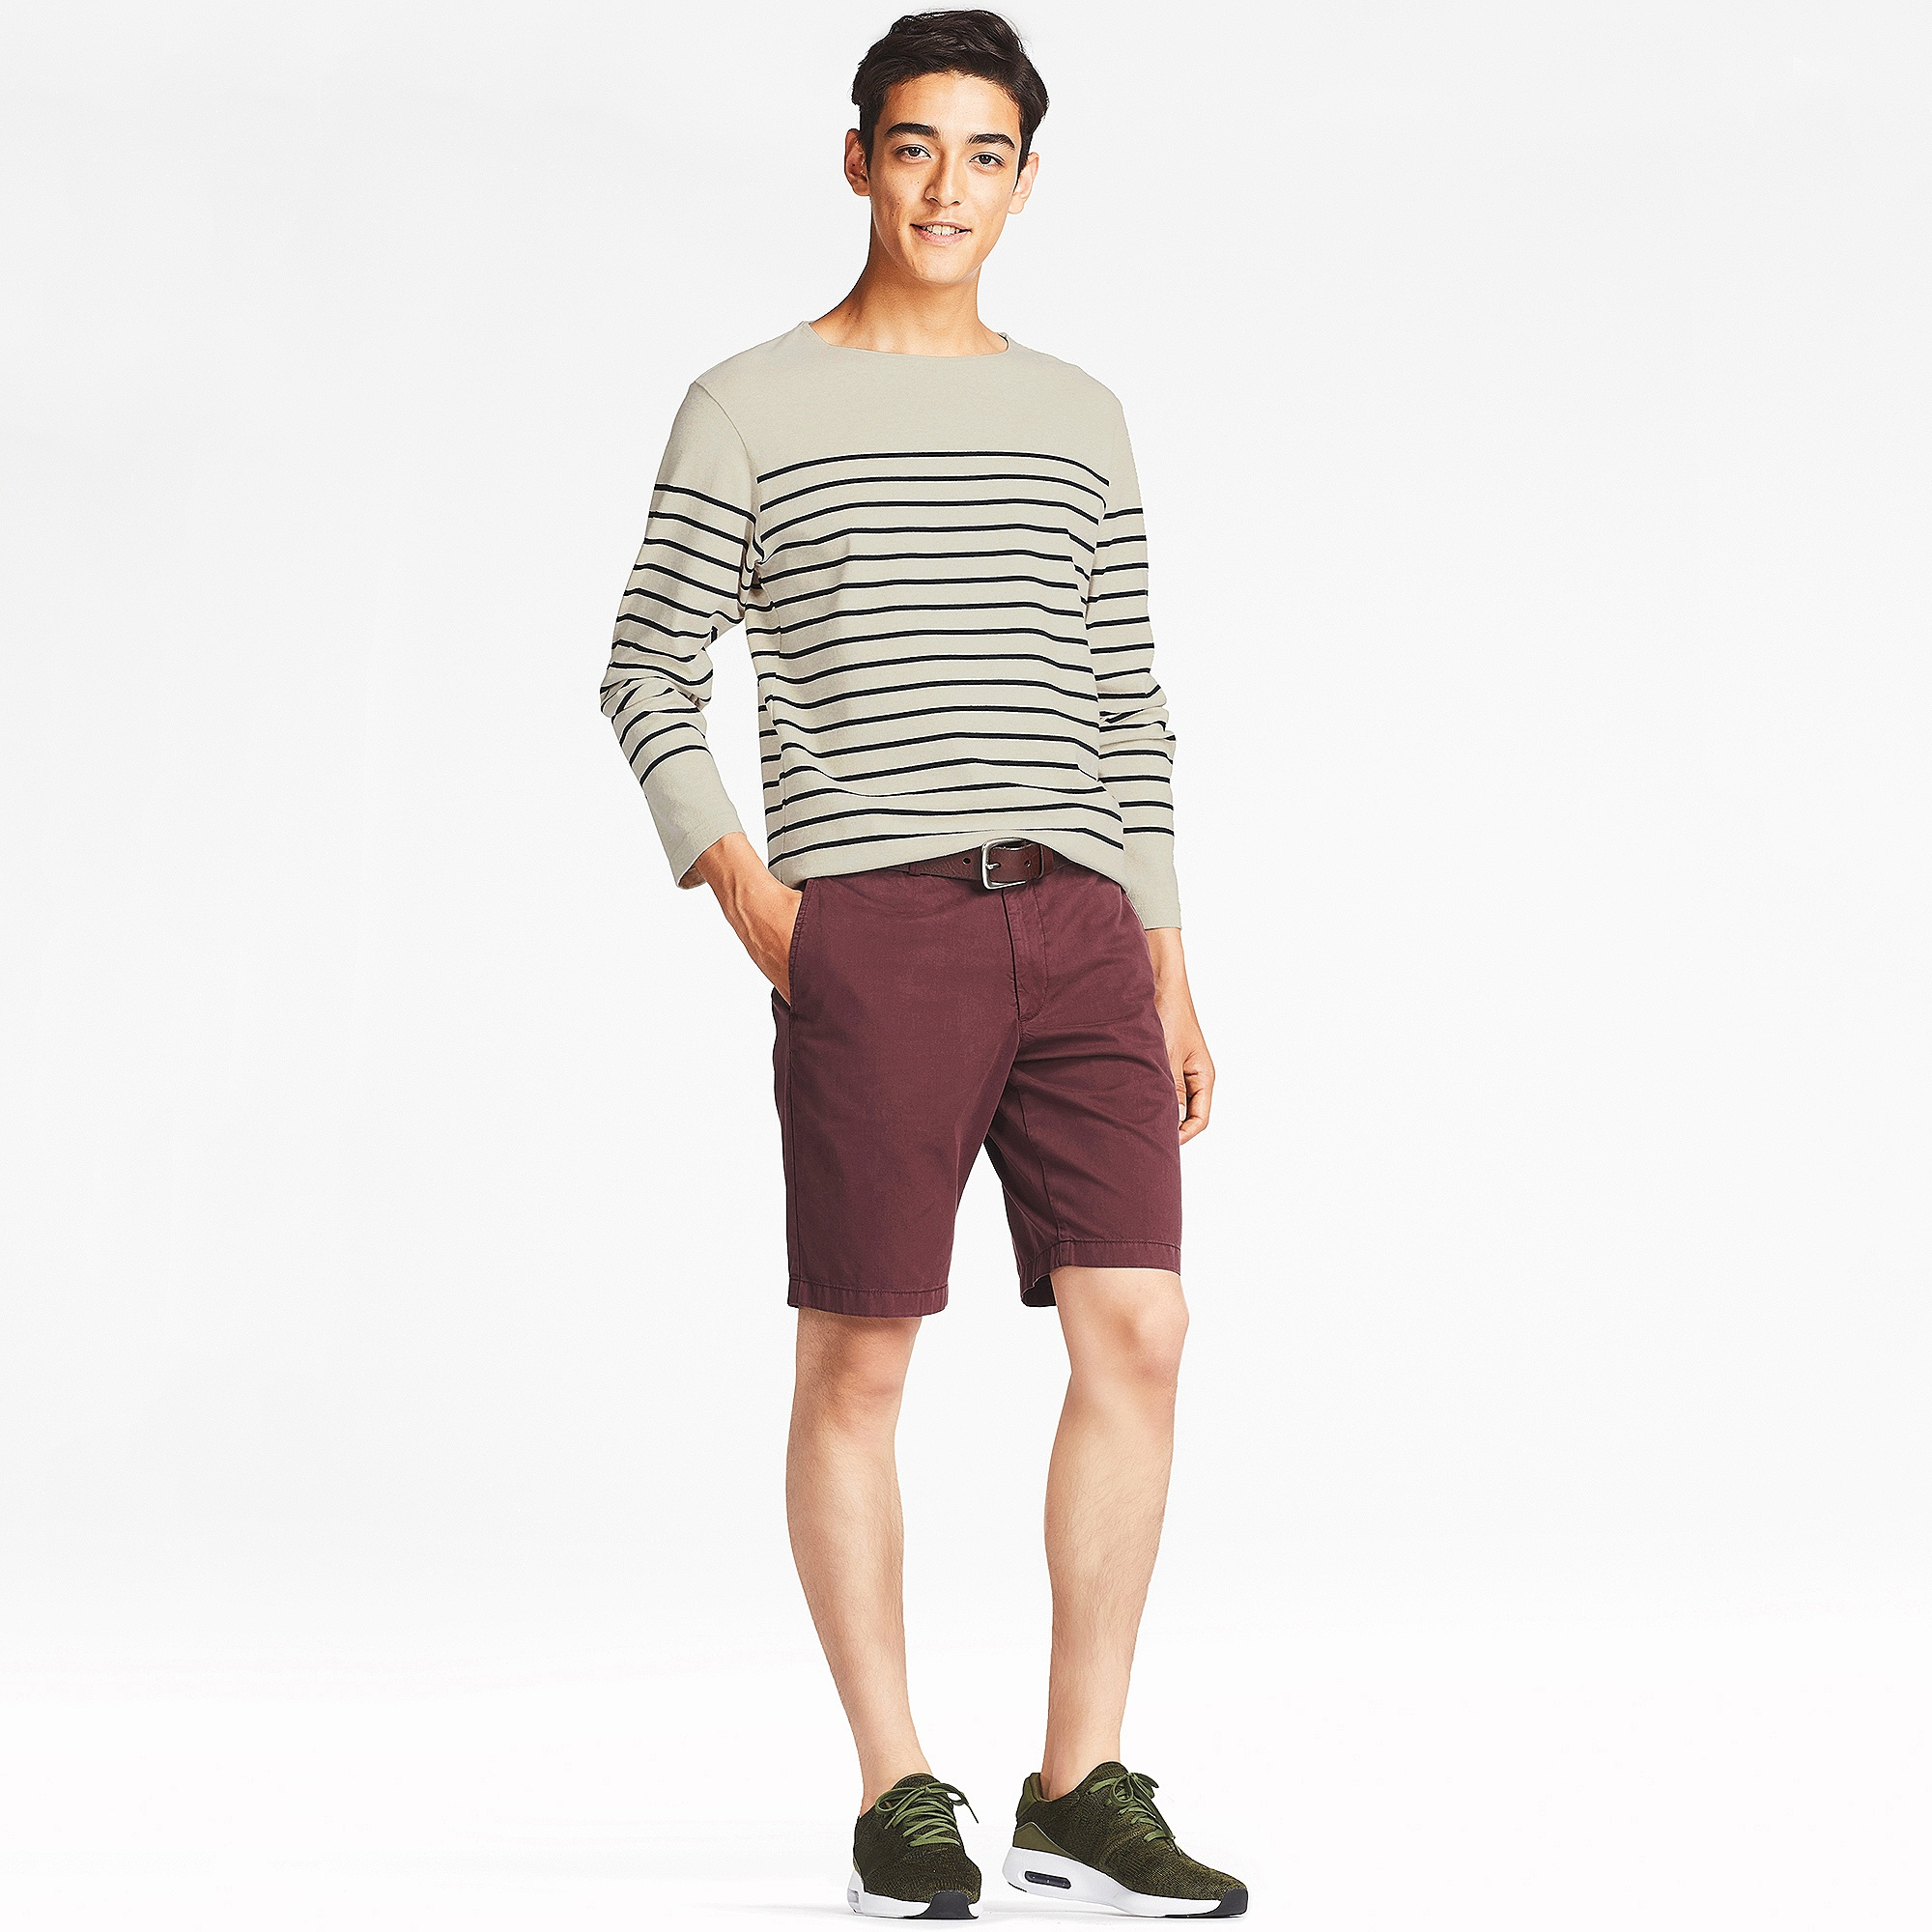 daae3d4f82 Uniqlo MEN WASHED STRIPED BOAT NECK LONG SLEEVE T-SHIRT at £14.9 ...